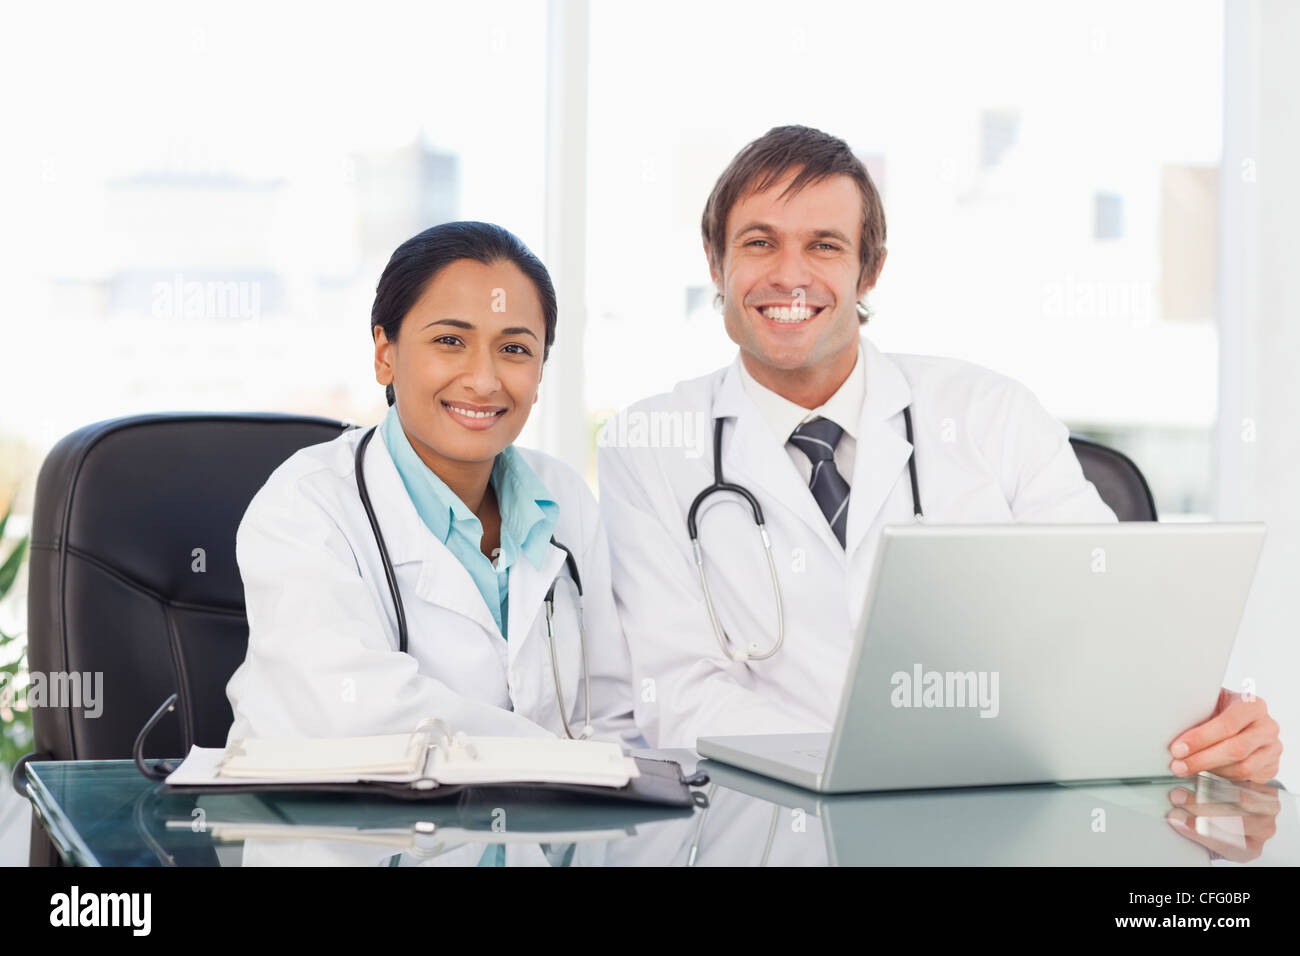 Smiling doctor sitting in front of his laptop while being accompanied by a colleague - Stock Image